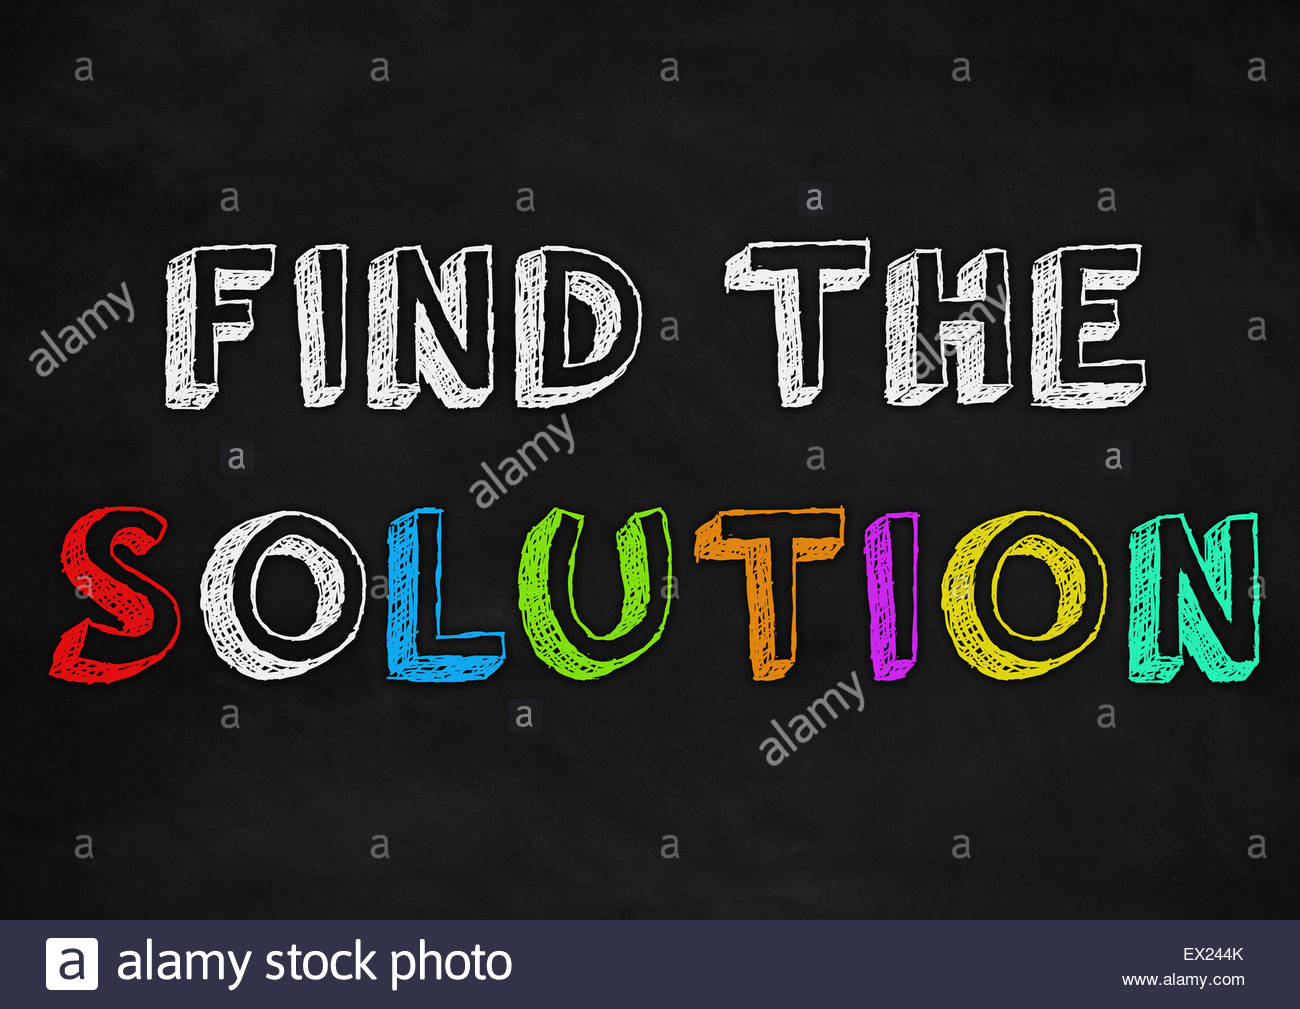 find the solution - Stock Image